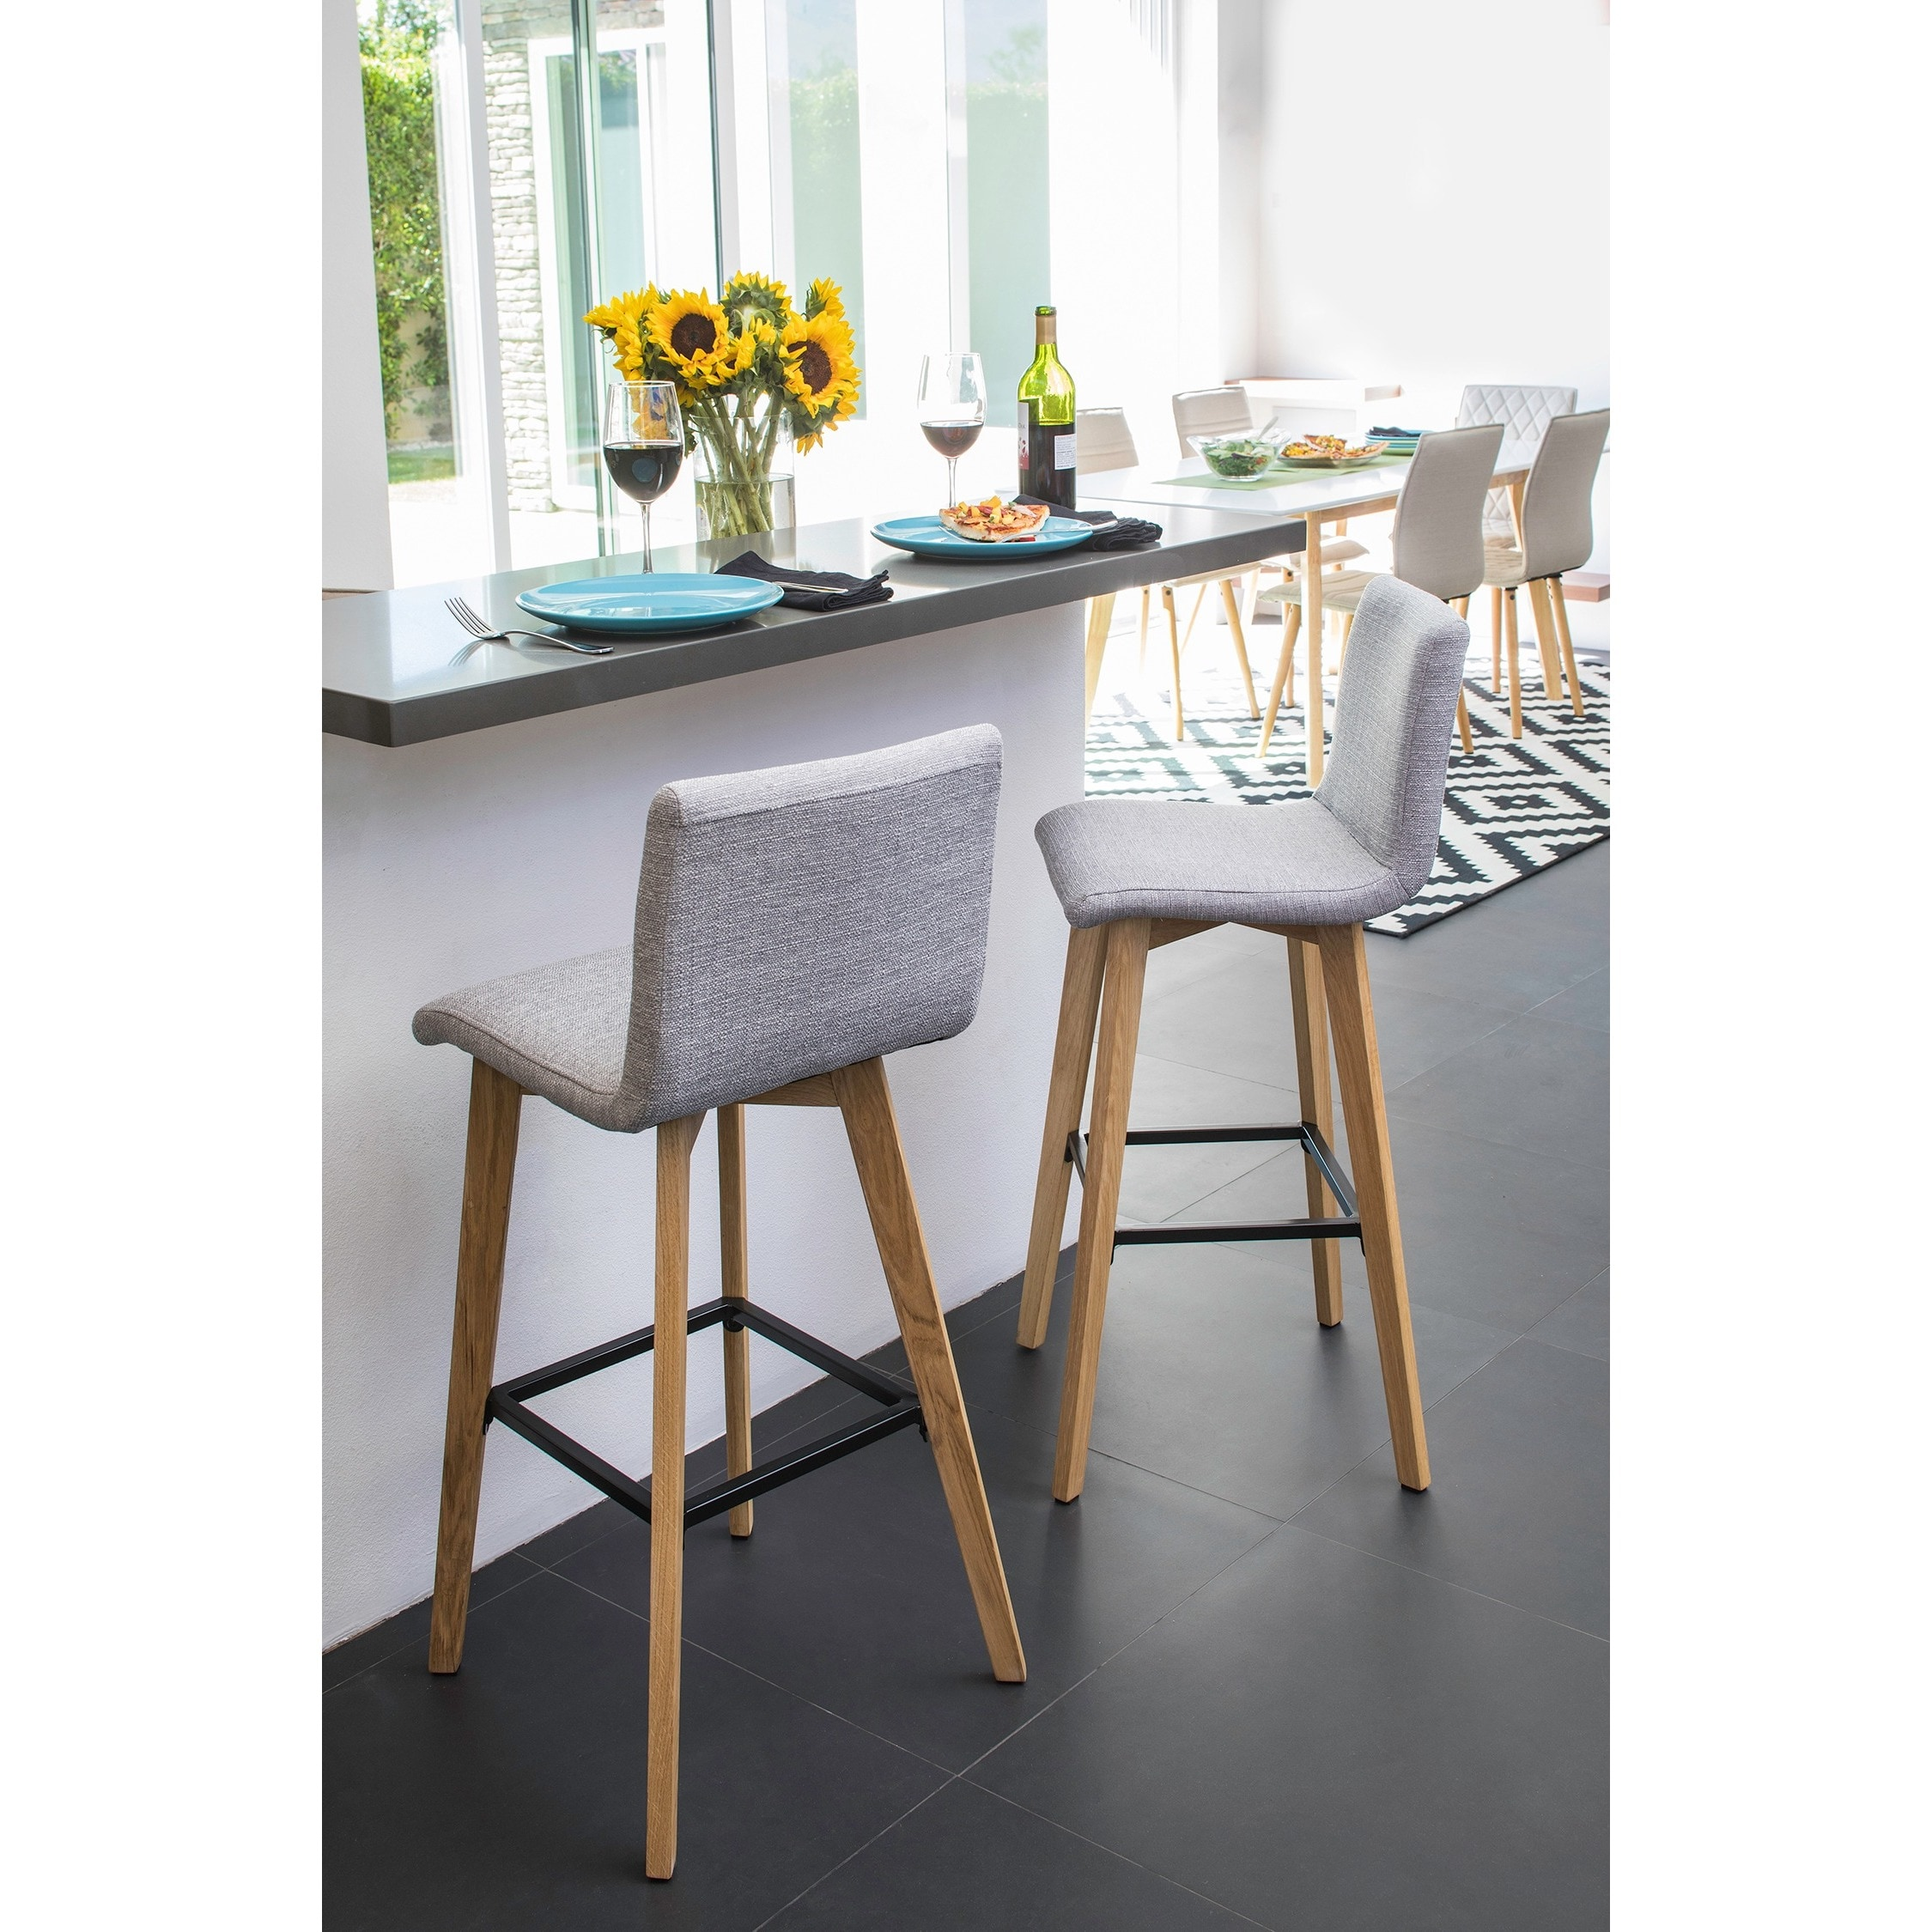 30 inch bar stools with back. Handy Living Curved Back Dove Grey Linen 30-inch Bar Stools (Set Of 2) - Free Shipping Today Overstock 19654679 30 Inch With S